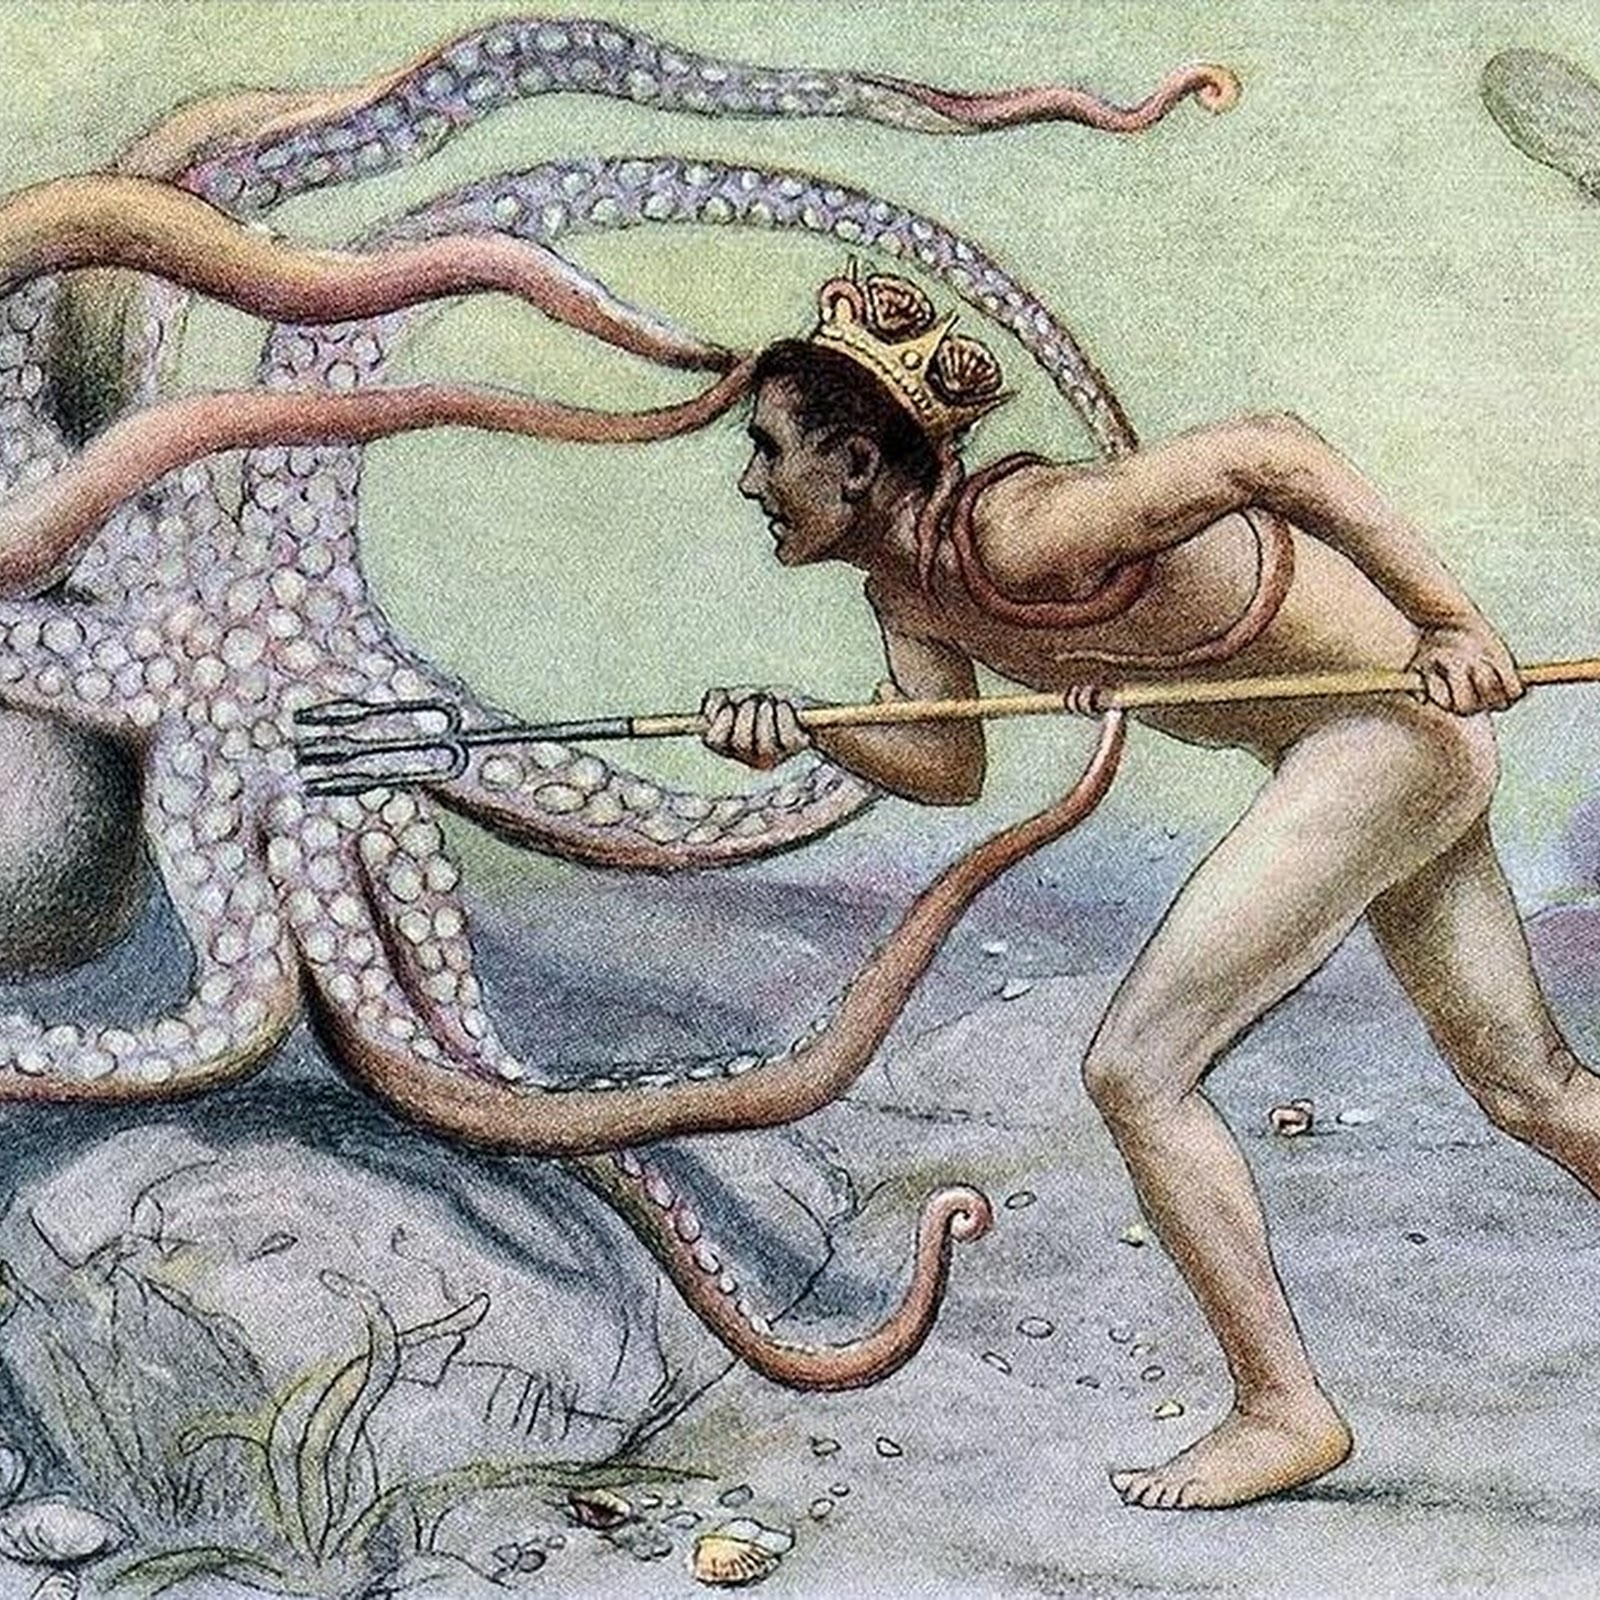 The Forgotten Sport of Octopus Wrestling